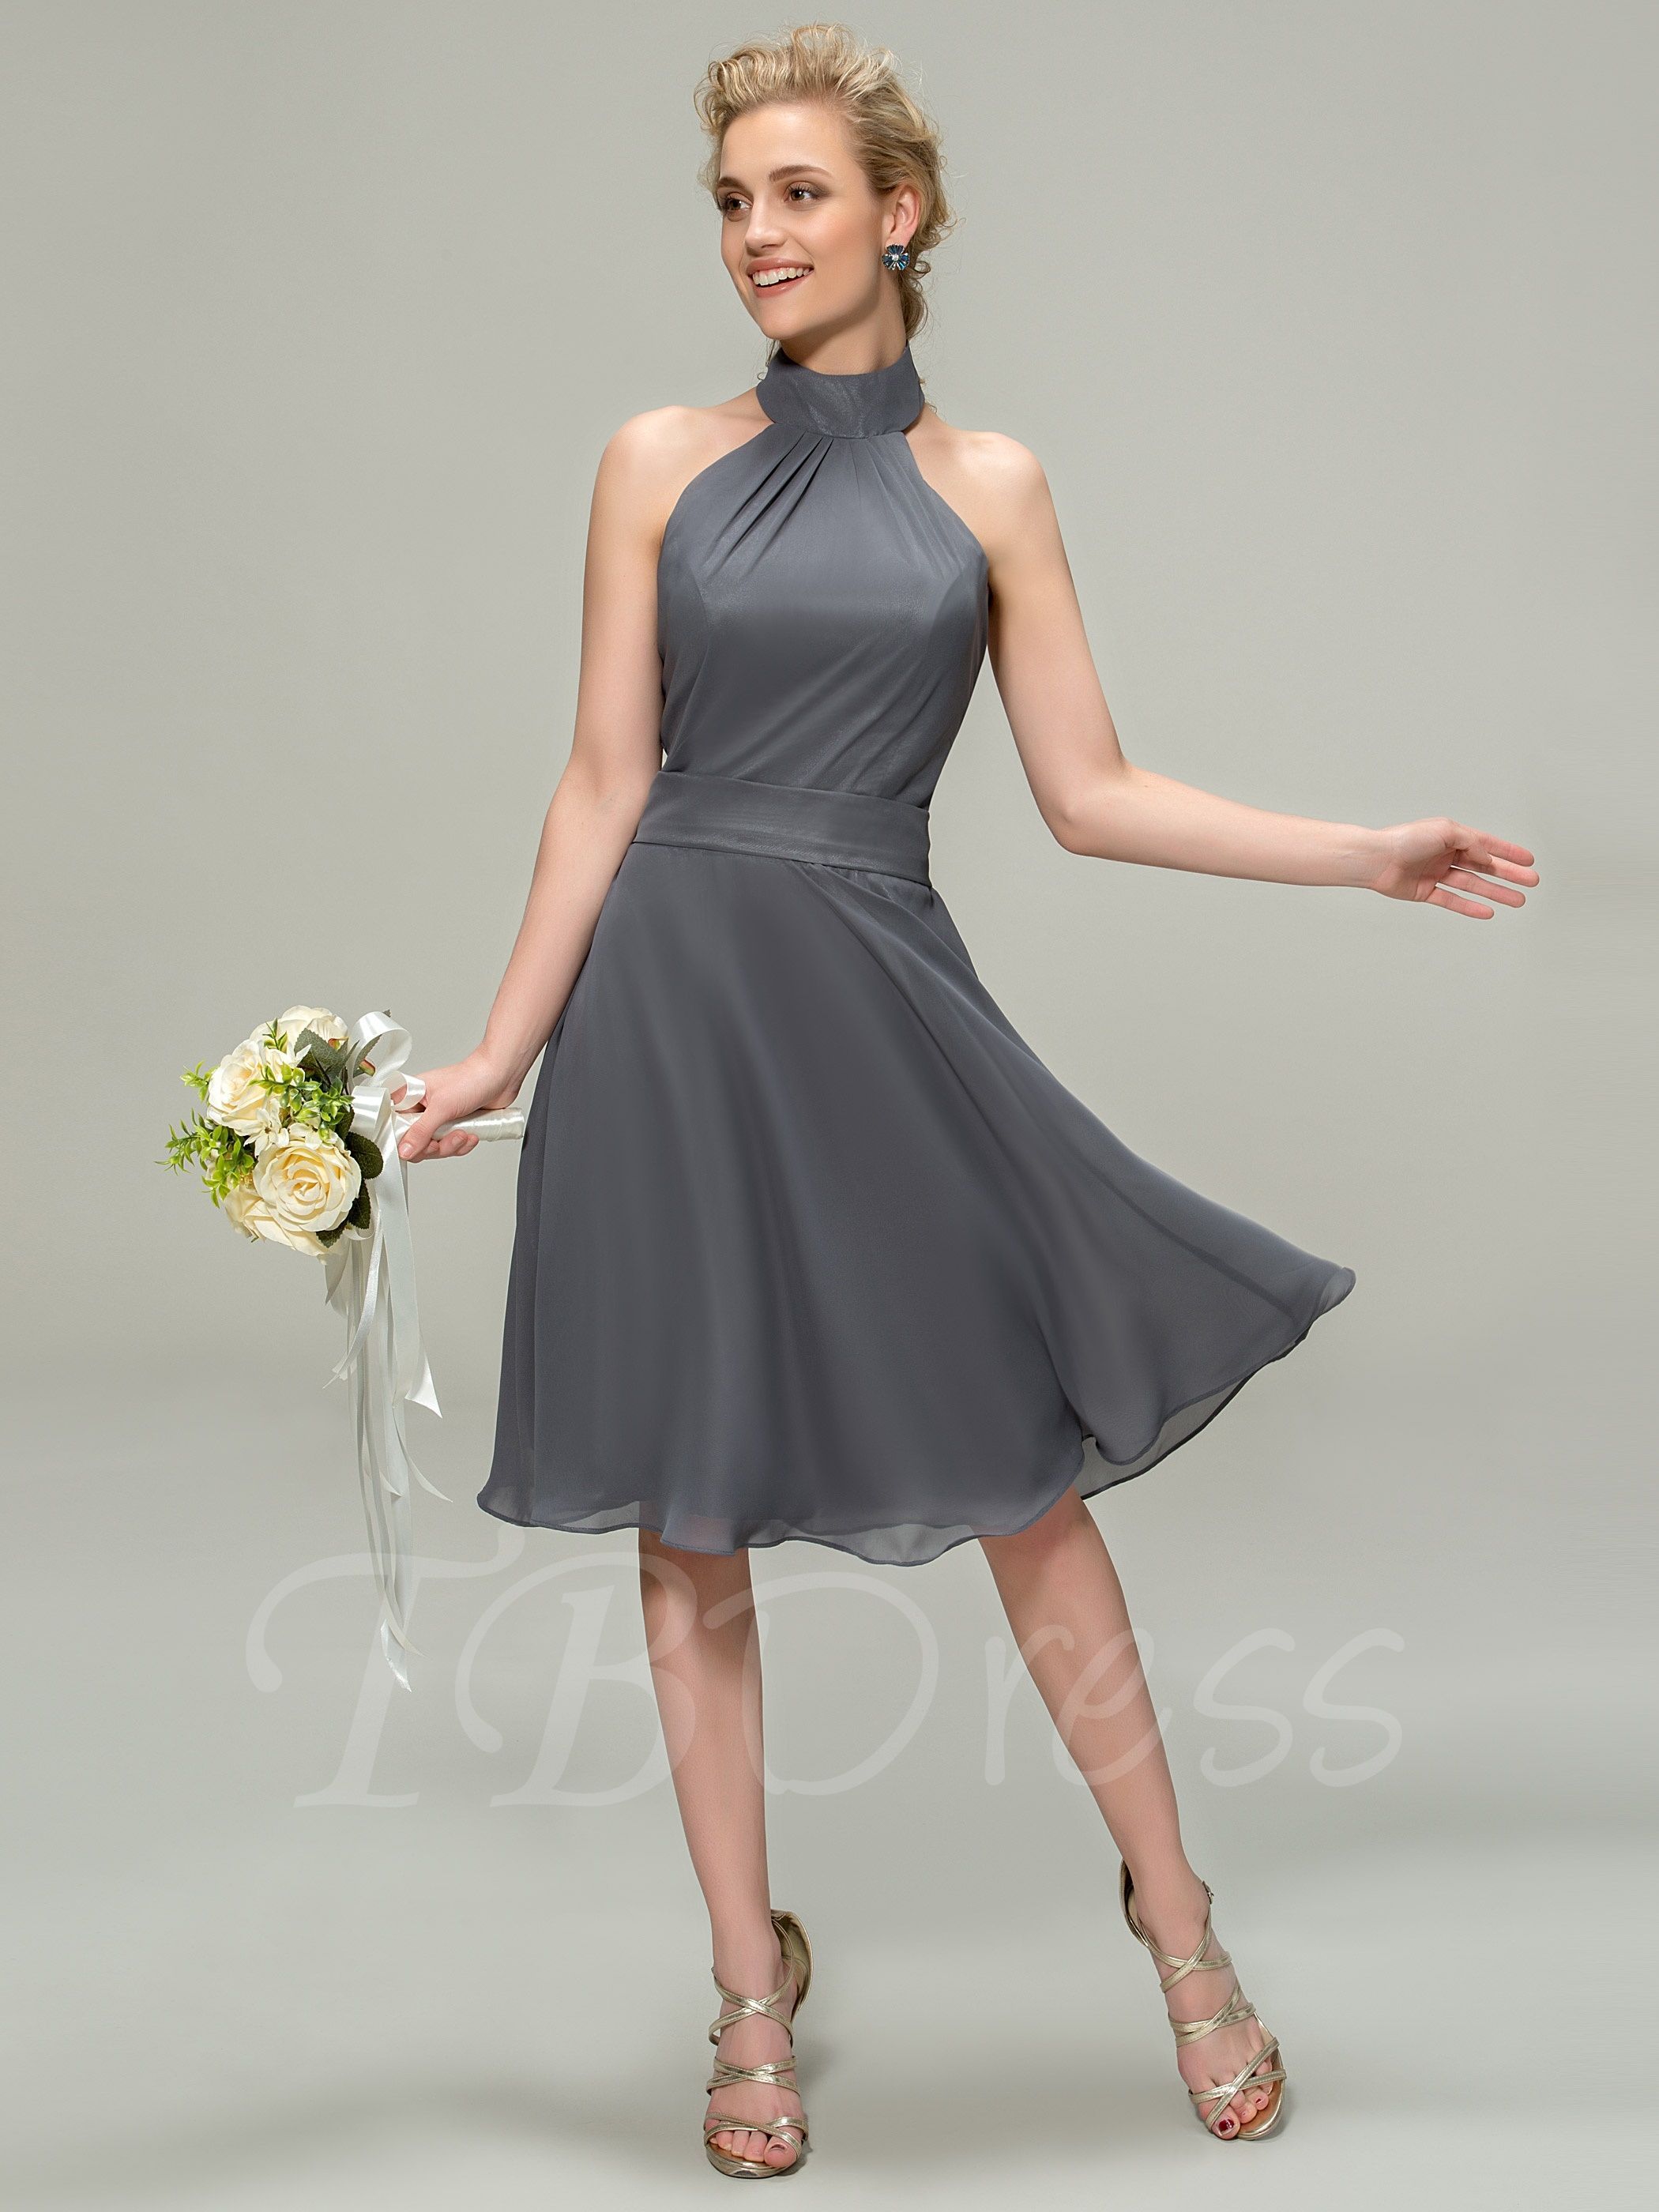 Halter kneelength bridesmaid dress with images knee